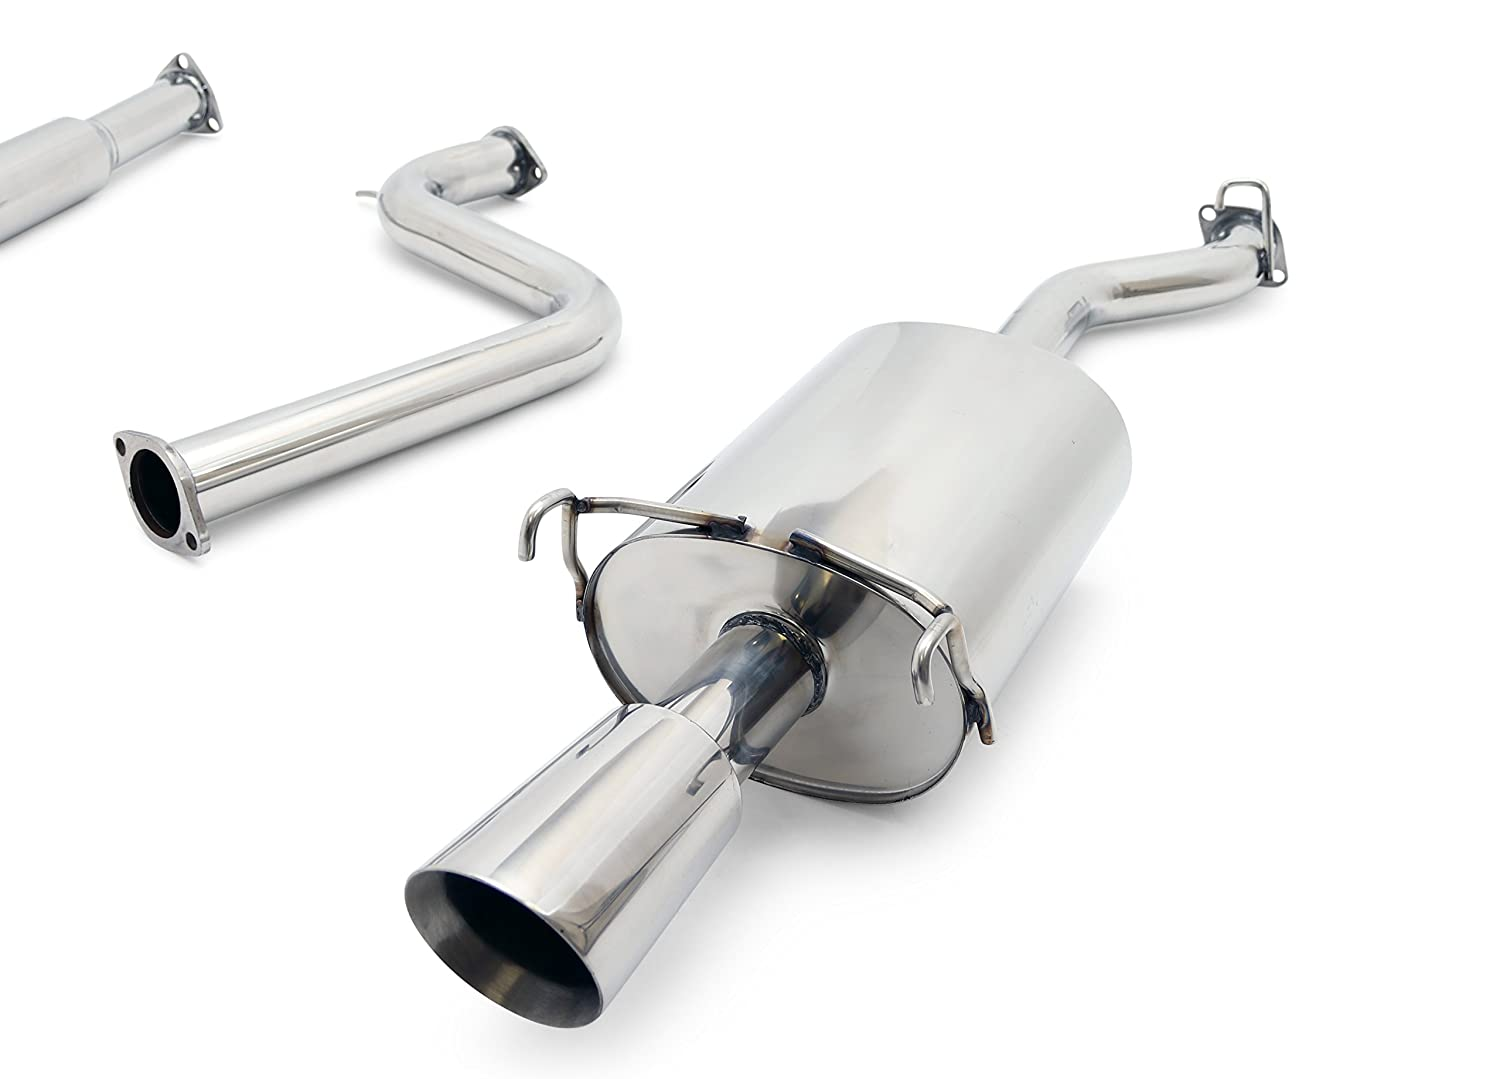 4-Cyl Yonaka Compatible with 1994-1997 Honda Accord 2DR//4DR 2.5 Performance Stainless Steel Catback Exhaust